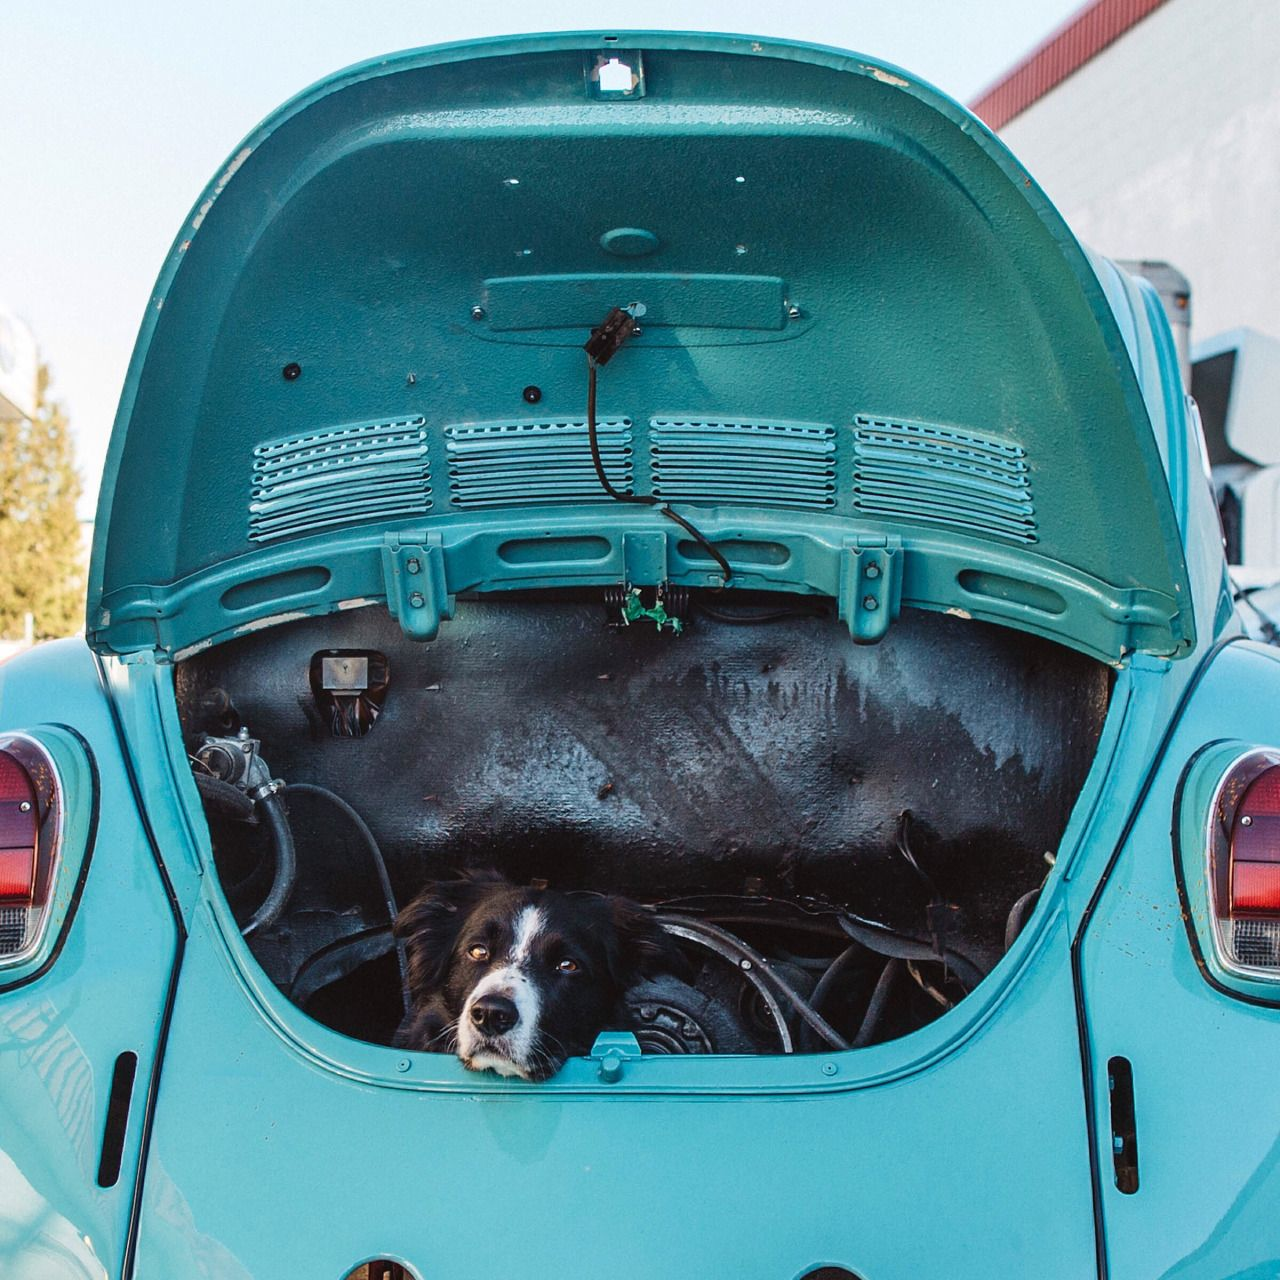 """The engine's in the back."" #enginebaydog"